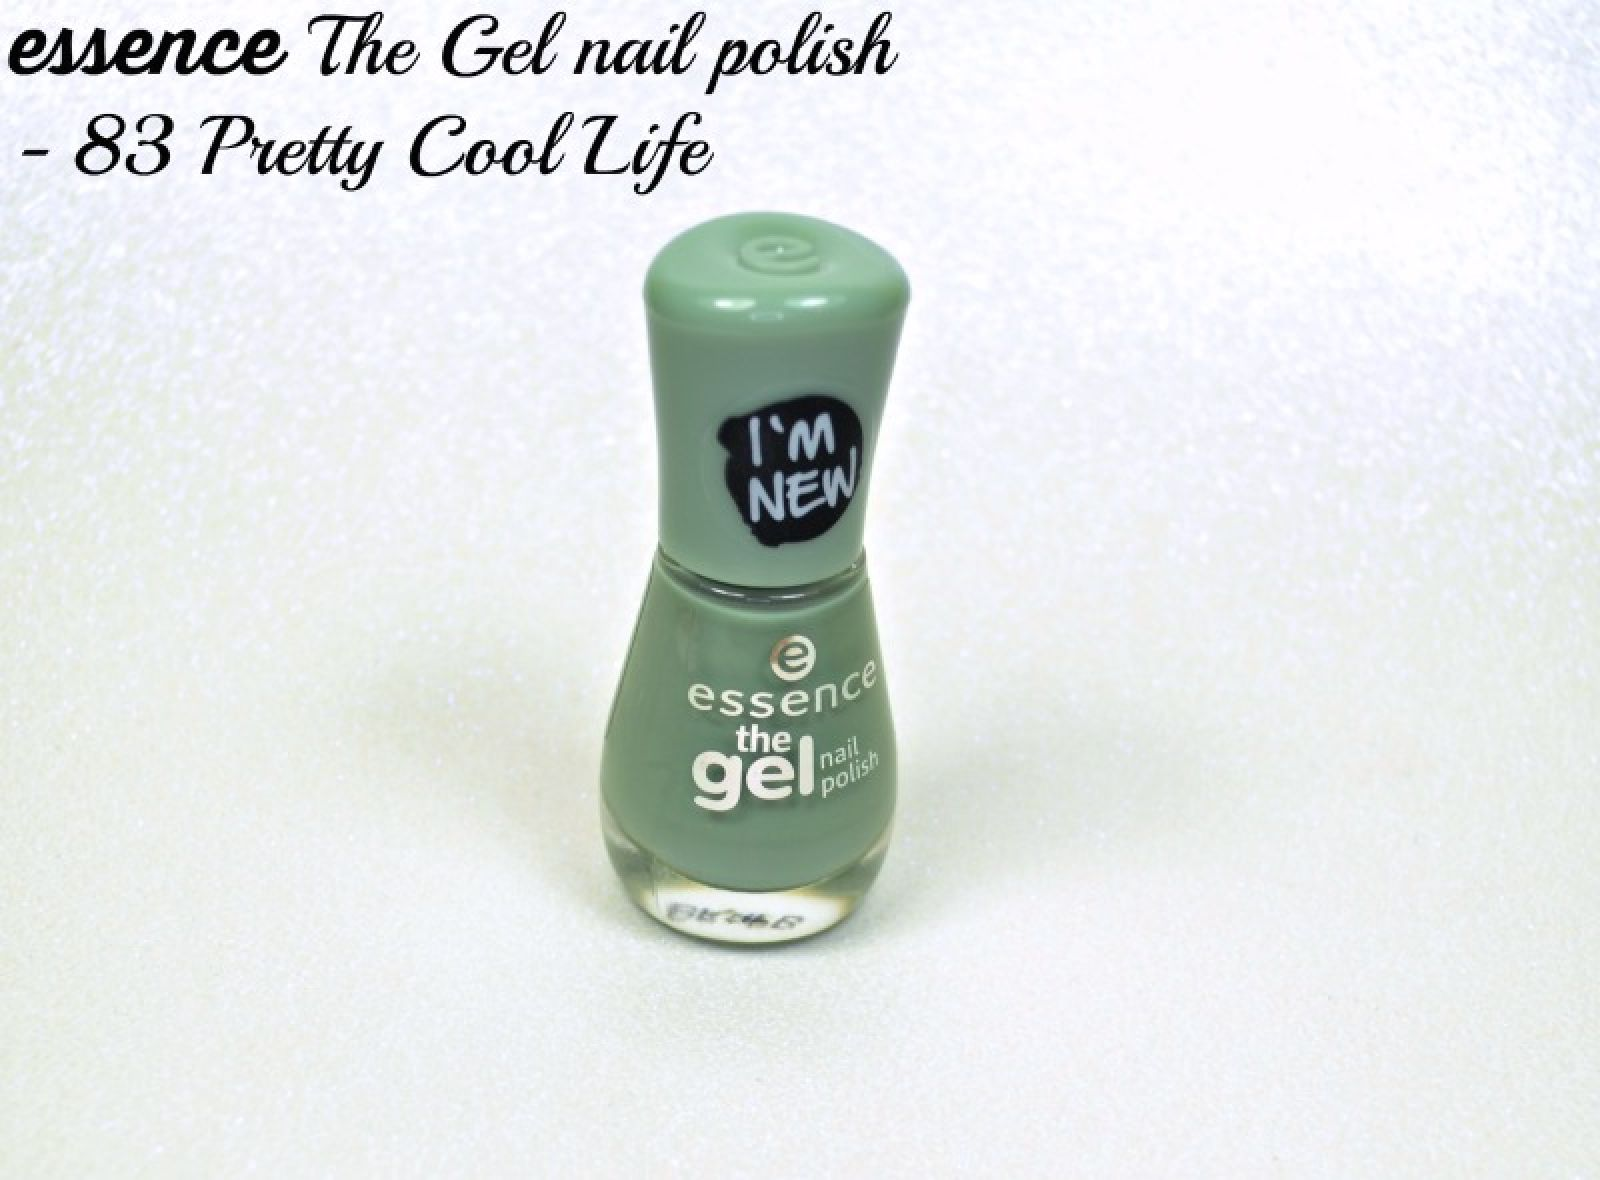 Essence The Gel nail polish - 83 Pretty Cool Life